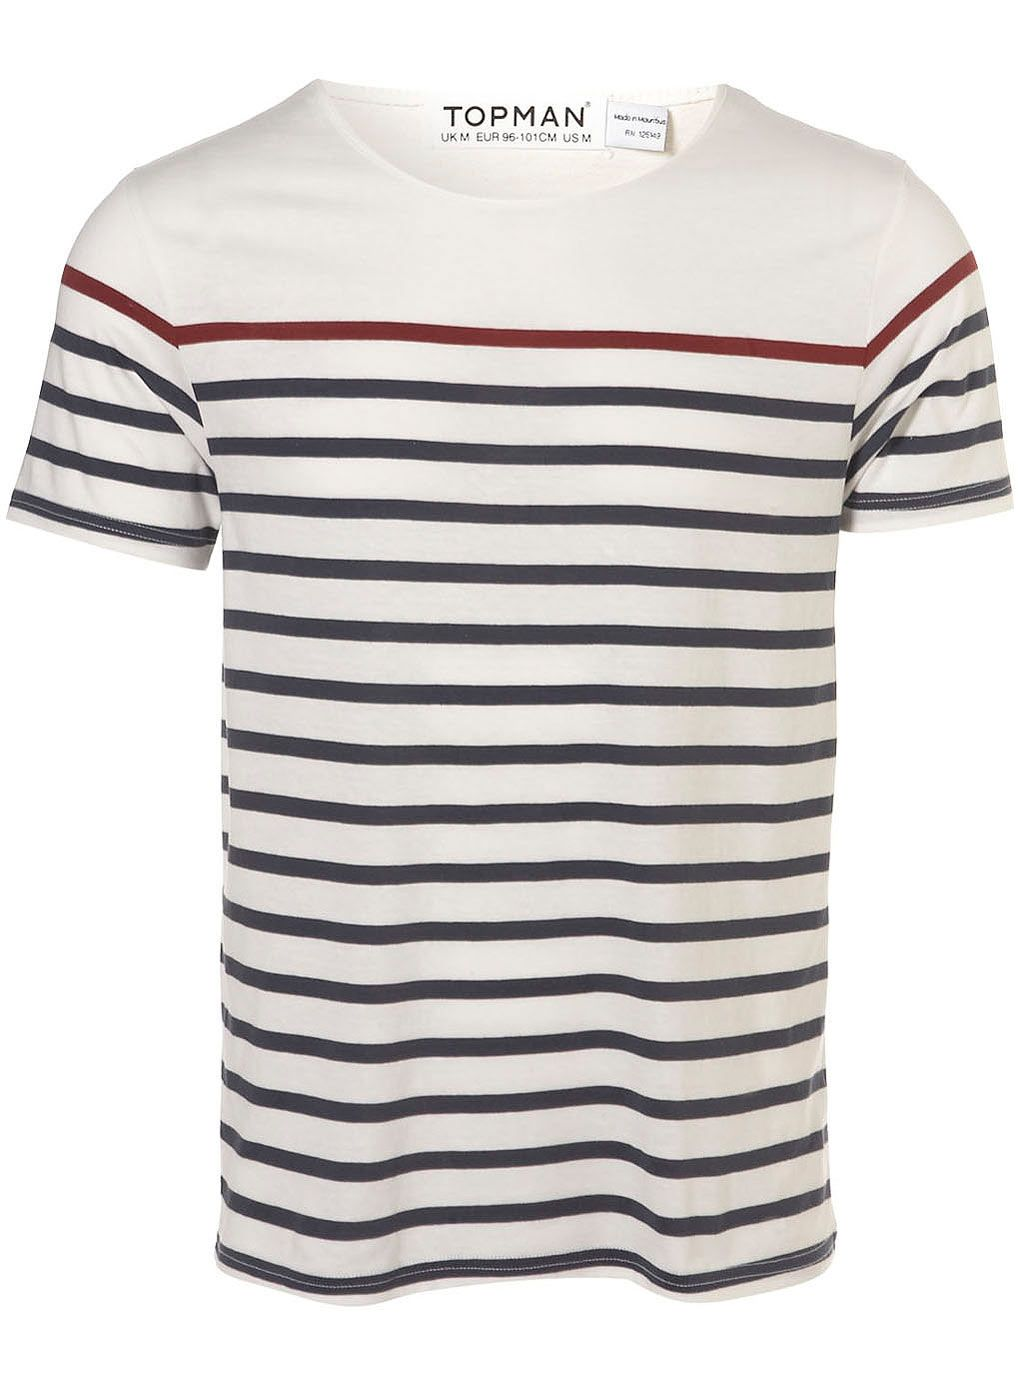 e66d605b23 Burgundy and Navy Breton Stripe T-SHIRT - Mens T-shirts & Tank Tops -  Clothing - TOPMAN USA